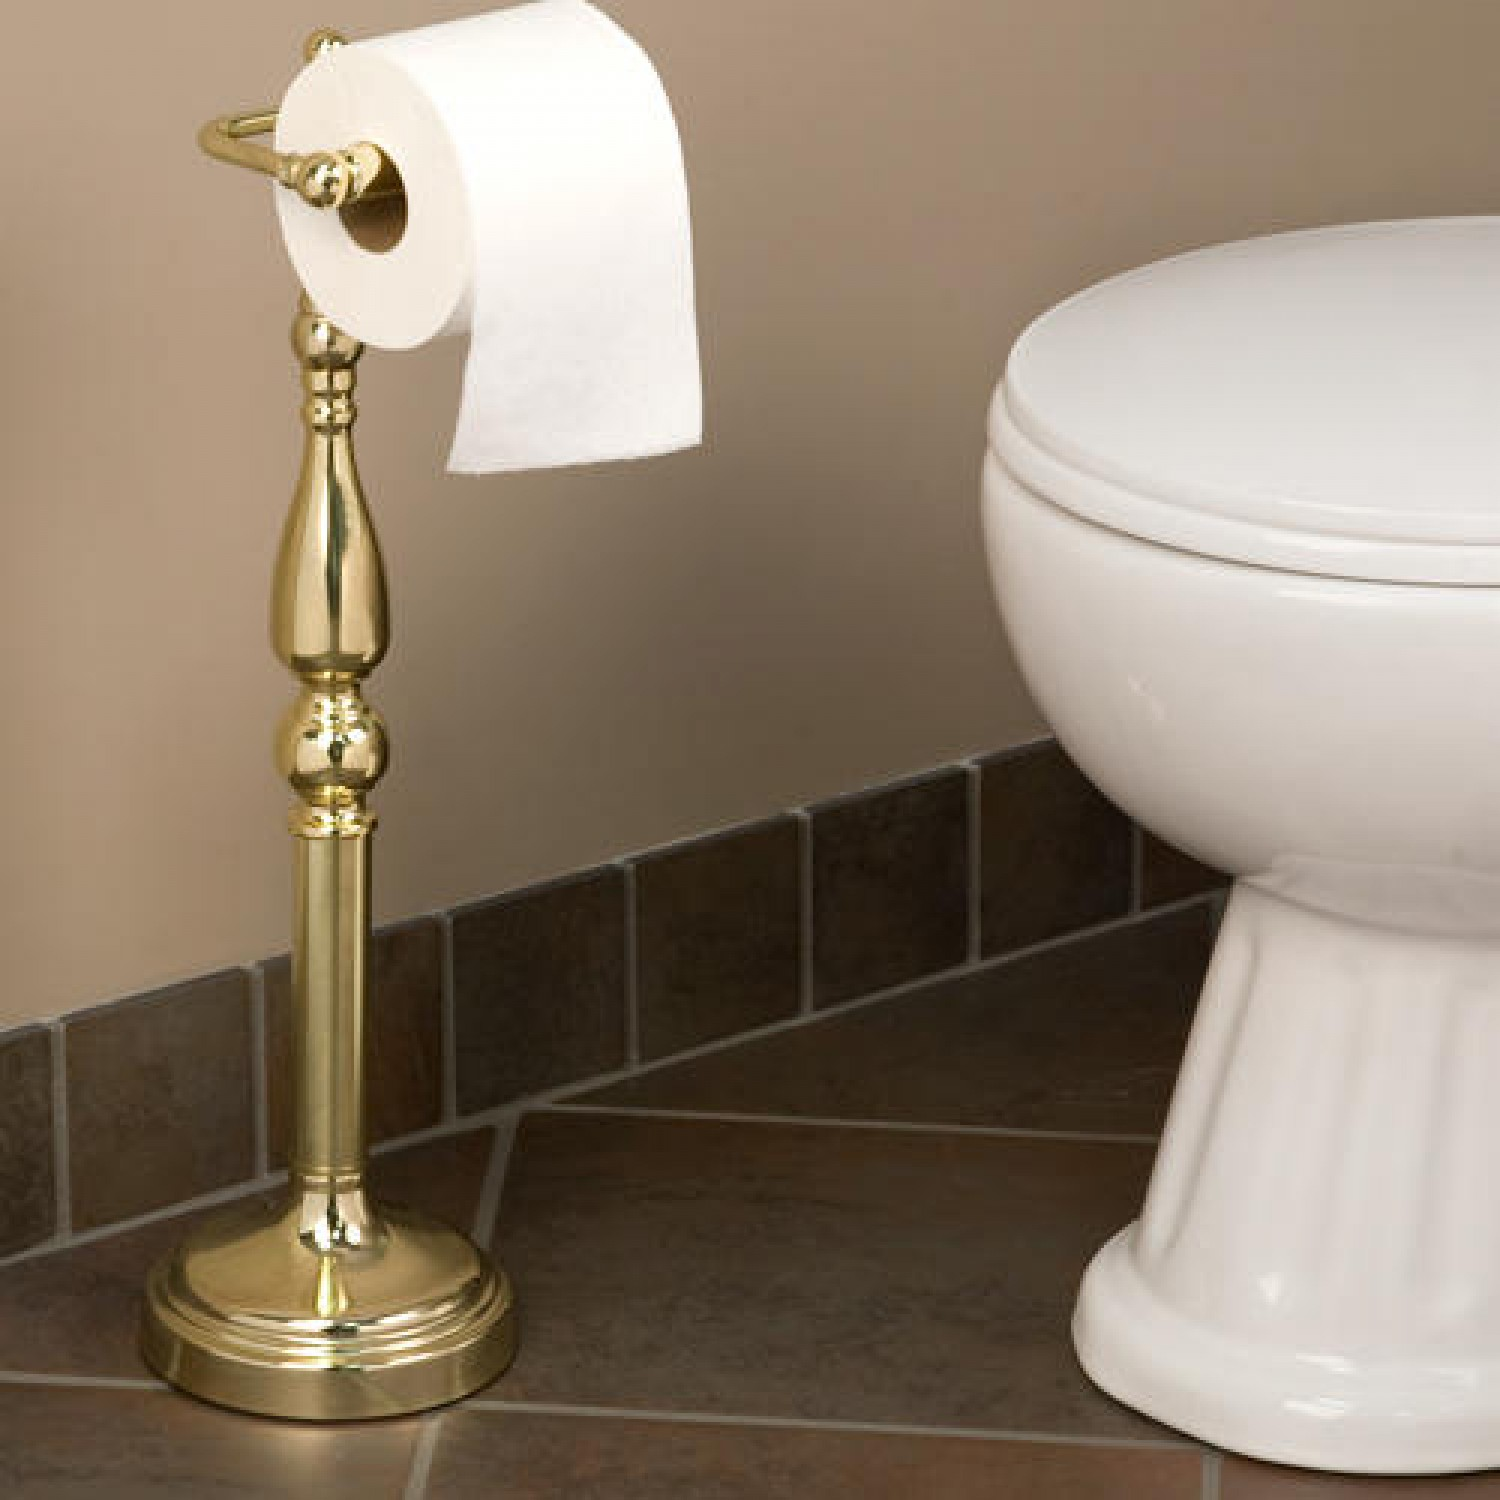 d313cebabed664 Back To Article → Artistic Toilet Paper Holder Stand. With copper twin tissue  roll ...